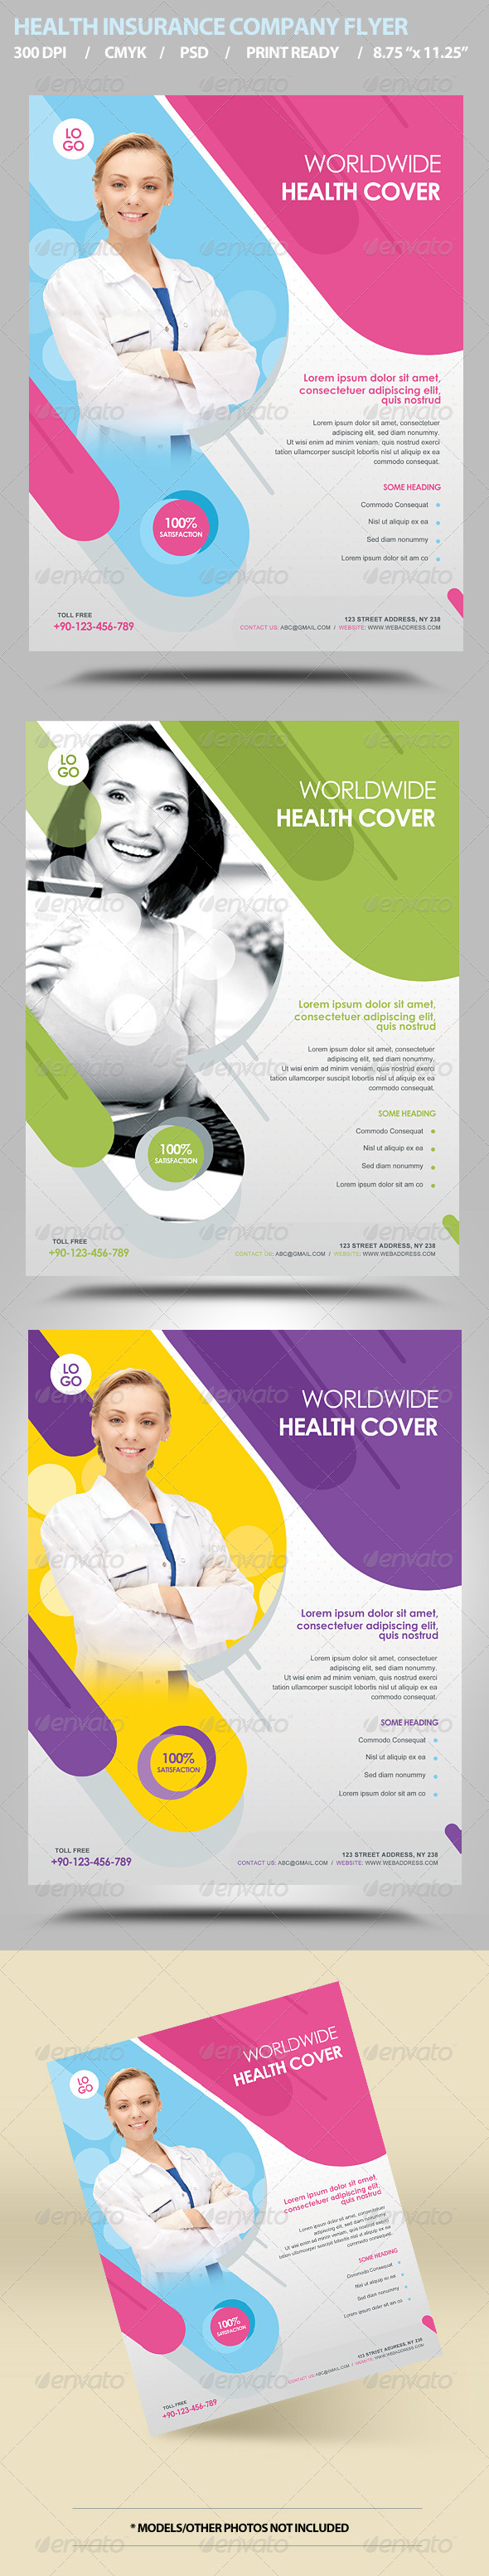 Health Insurance Flyer Template - Corporate Flyers